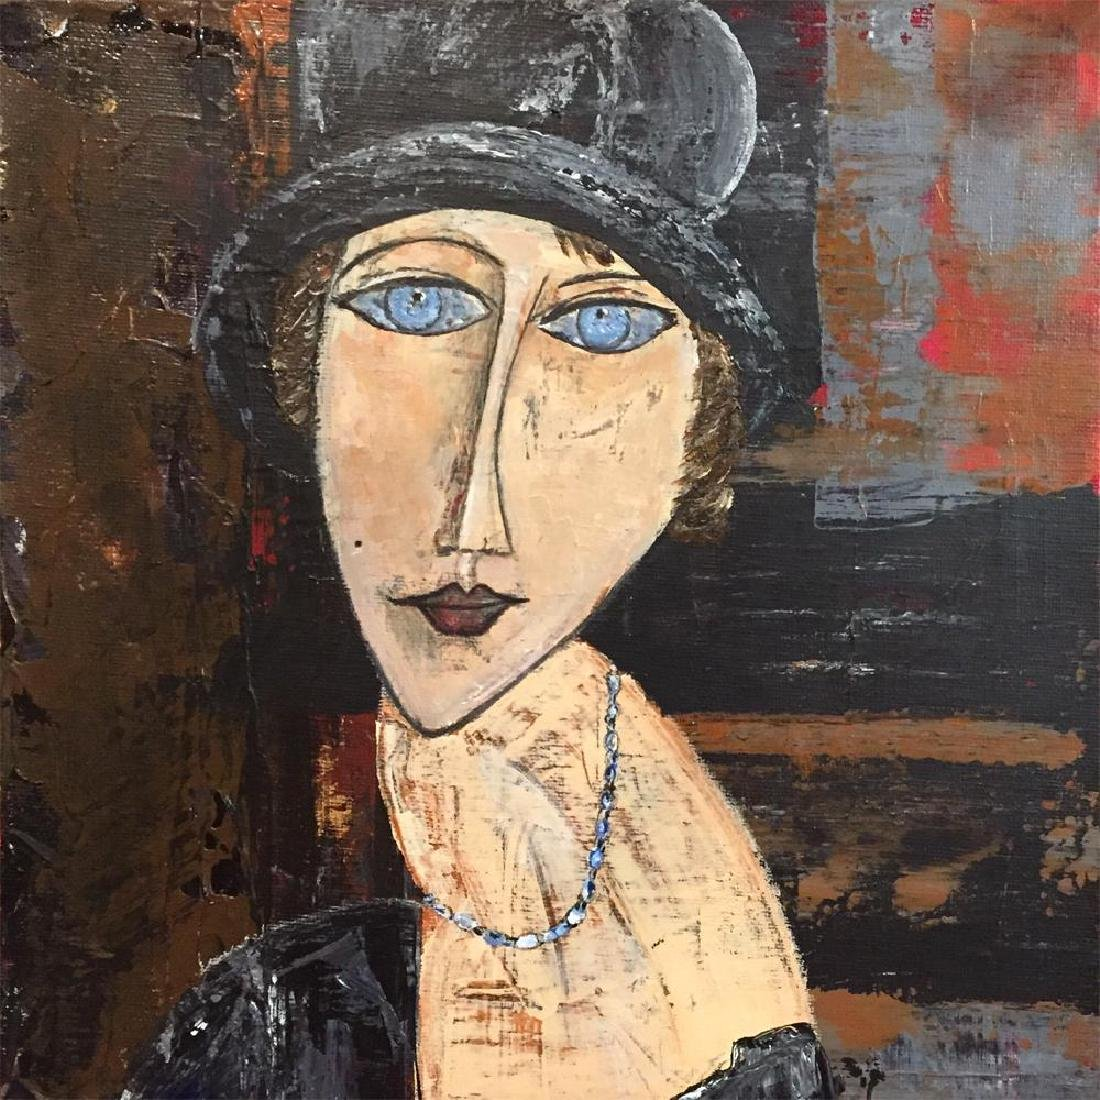 Hat & Necklace Original Painting Swahn Signed Canvas - 3